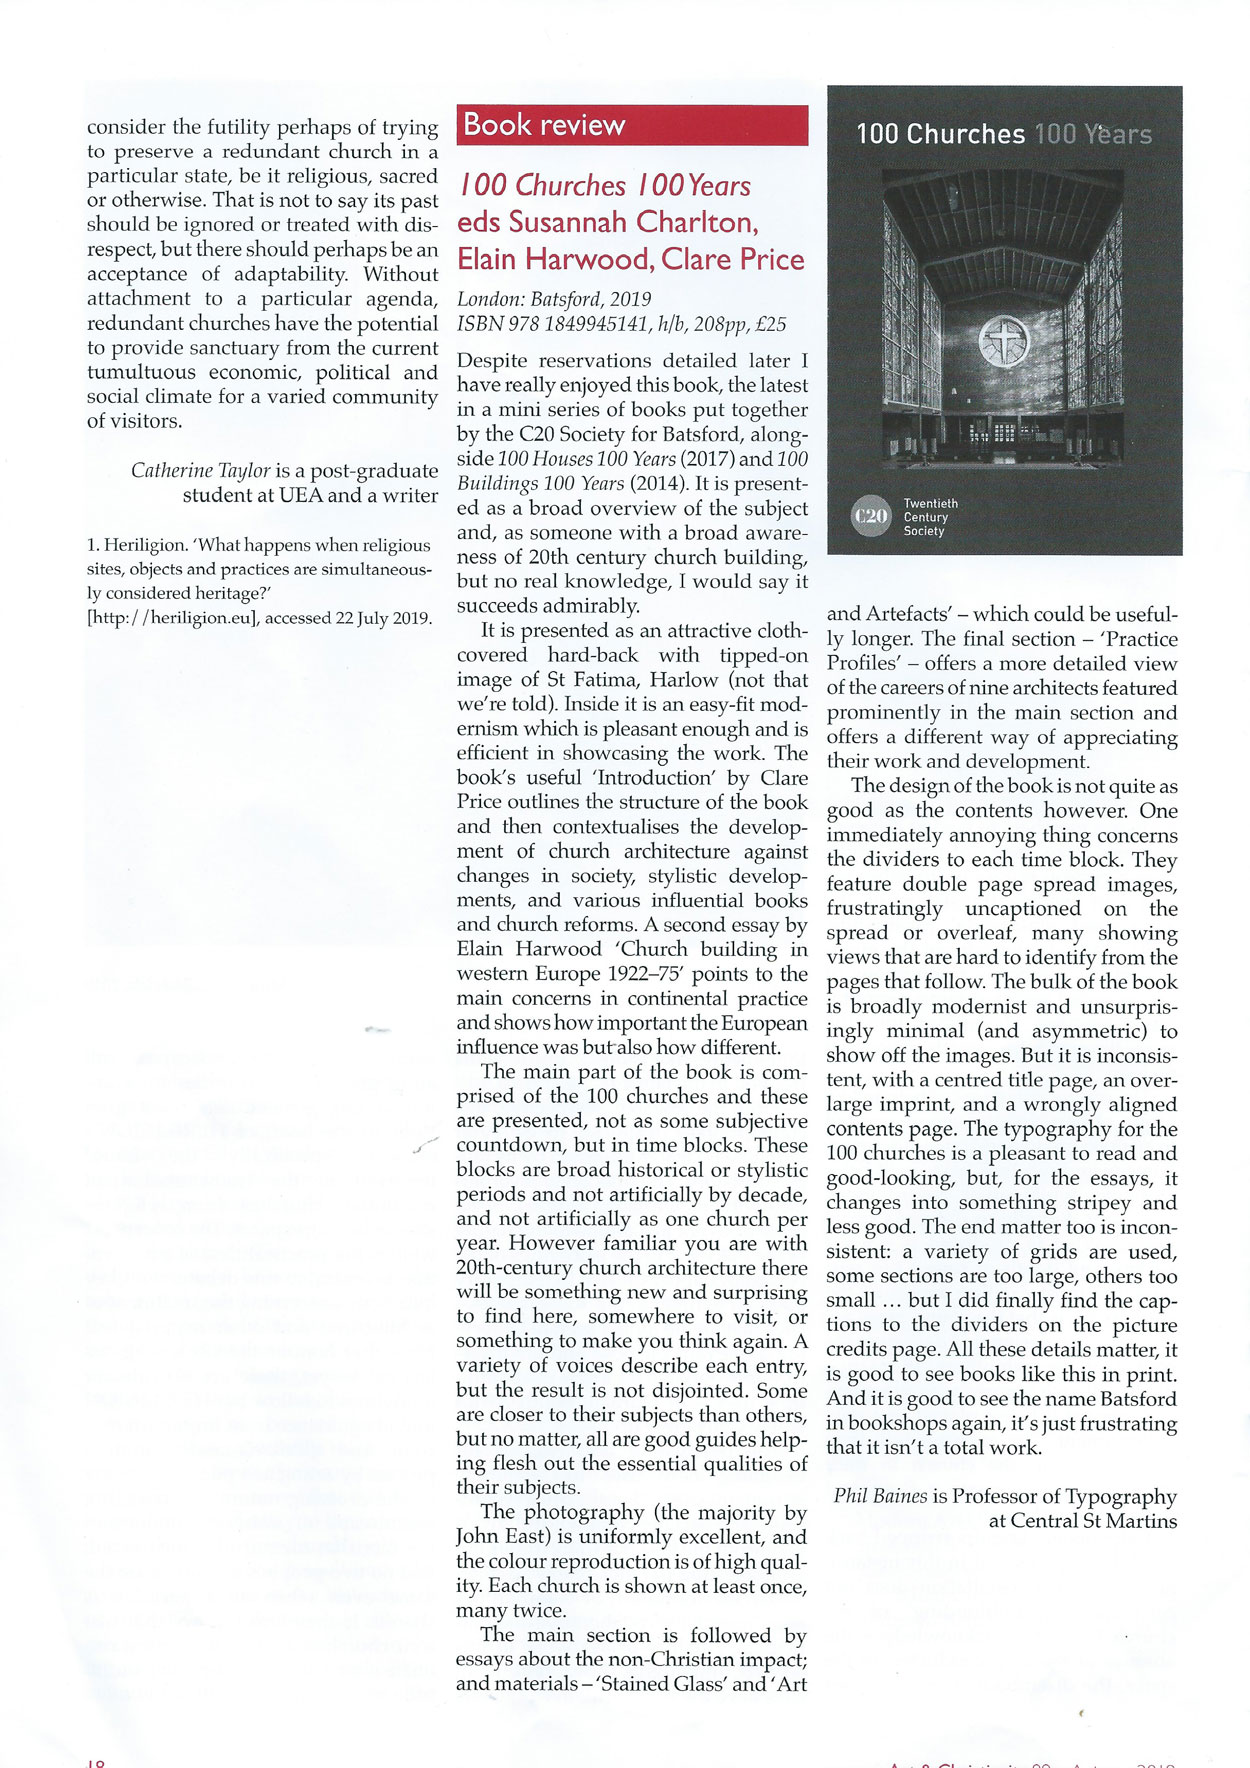 Review of Mira Calix's 2019 exhibition 'sihlabelela' in Art and Christianity journal.